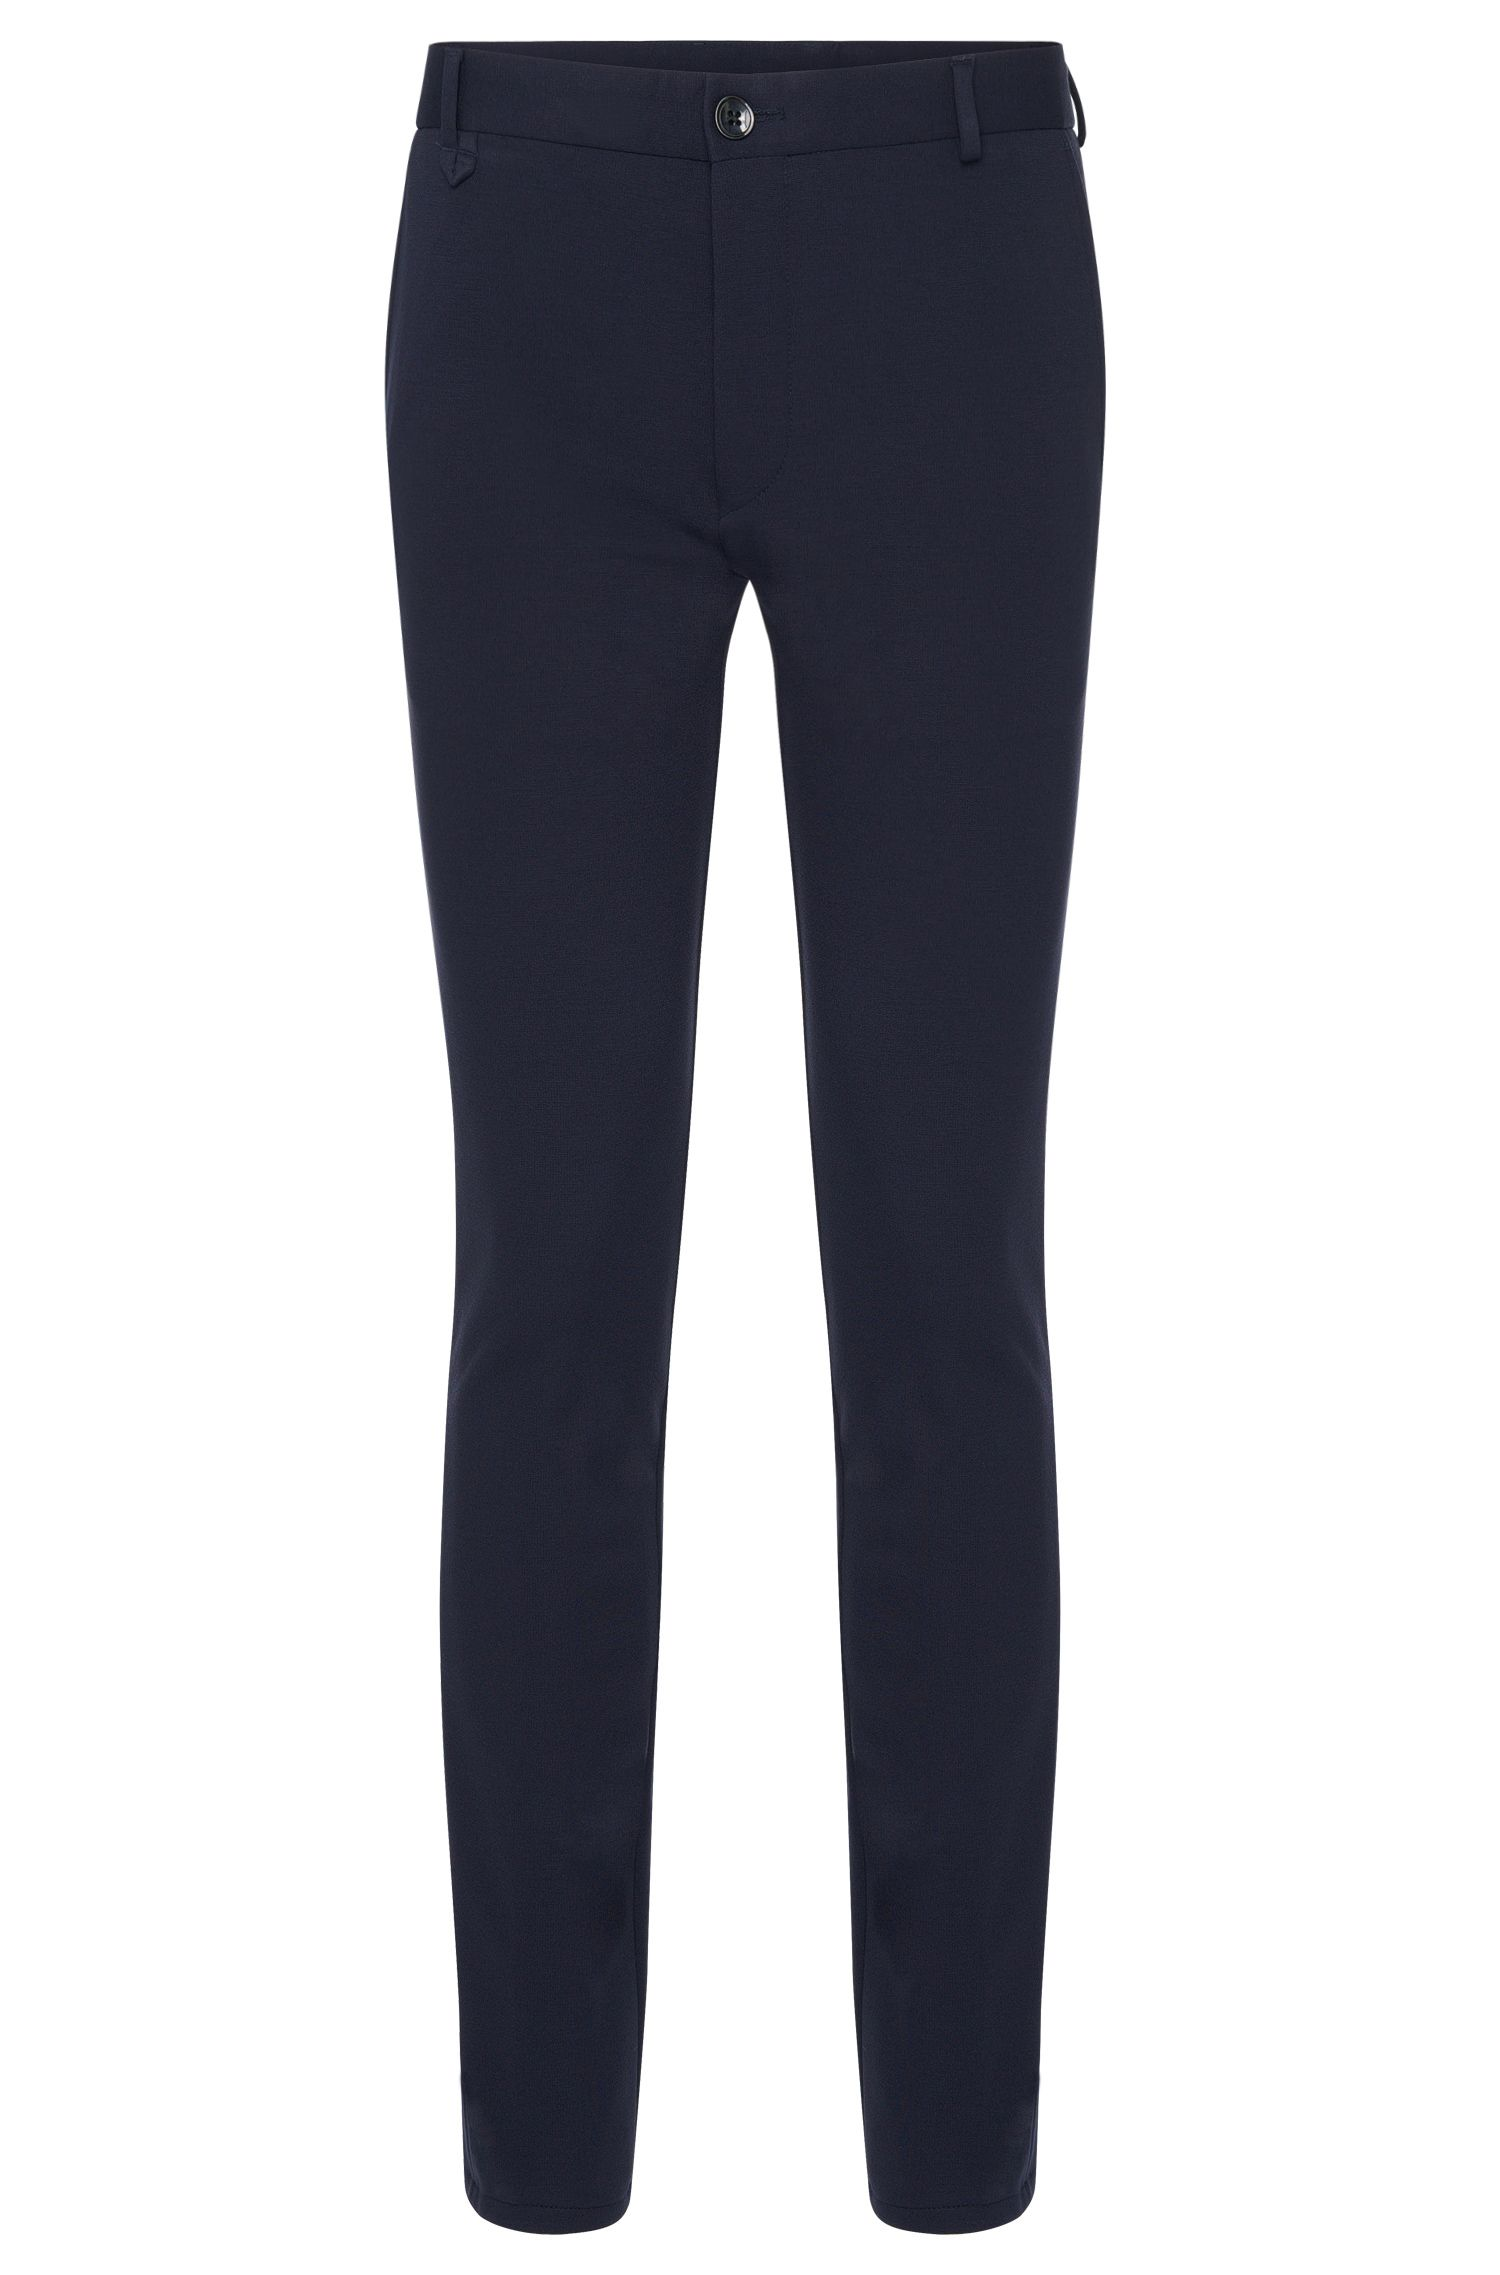 'Heldor' | Extra Slim Fit, Stretch Jersey Pants